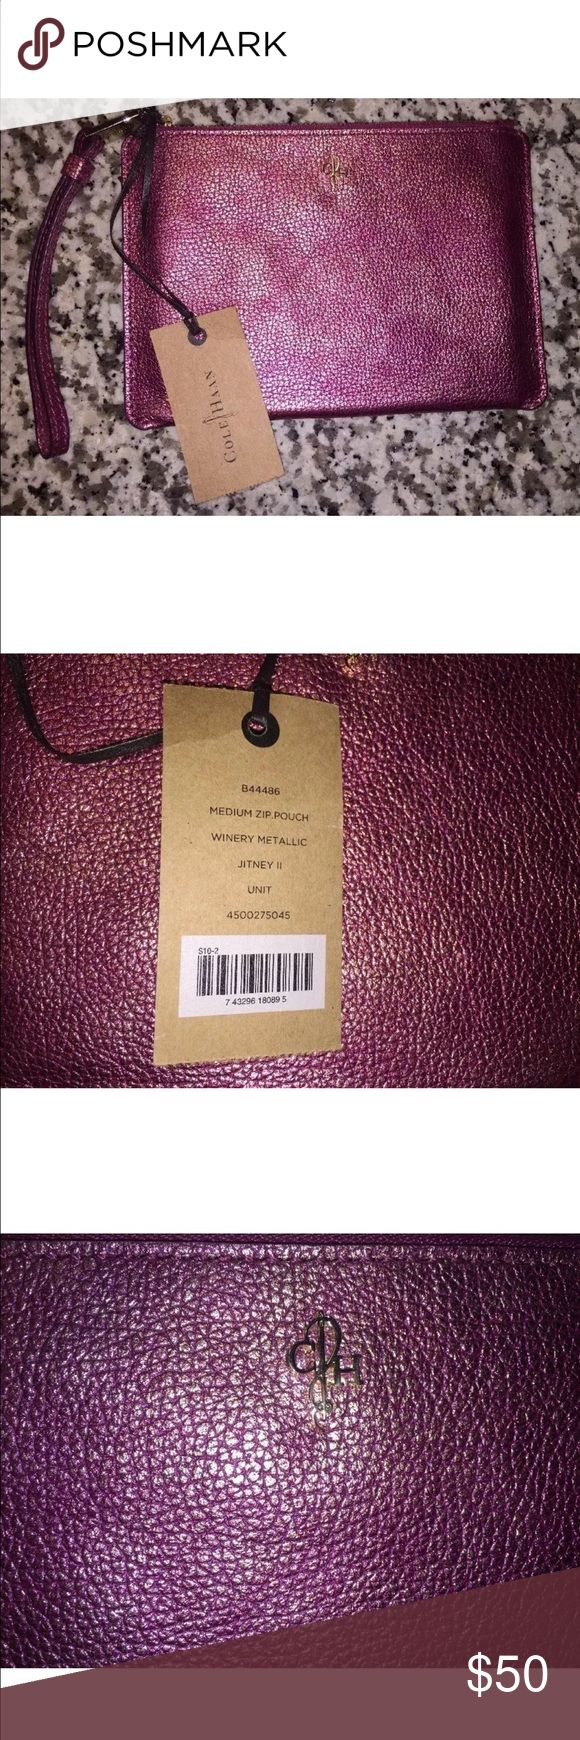 """New Cole Haan Jitney II winery wristlet purse rose New with tags Cole Haan Jitney II medium zip pouch. Winery metallic color which has tones of rose gold/ and blush sheen. 7 3/4"""" wide and 5 1/2"""" tall. Cole Haan Bags Clutches & Wristlets"""